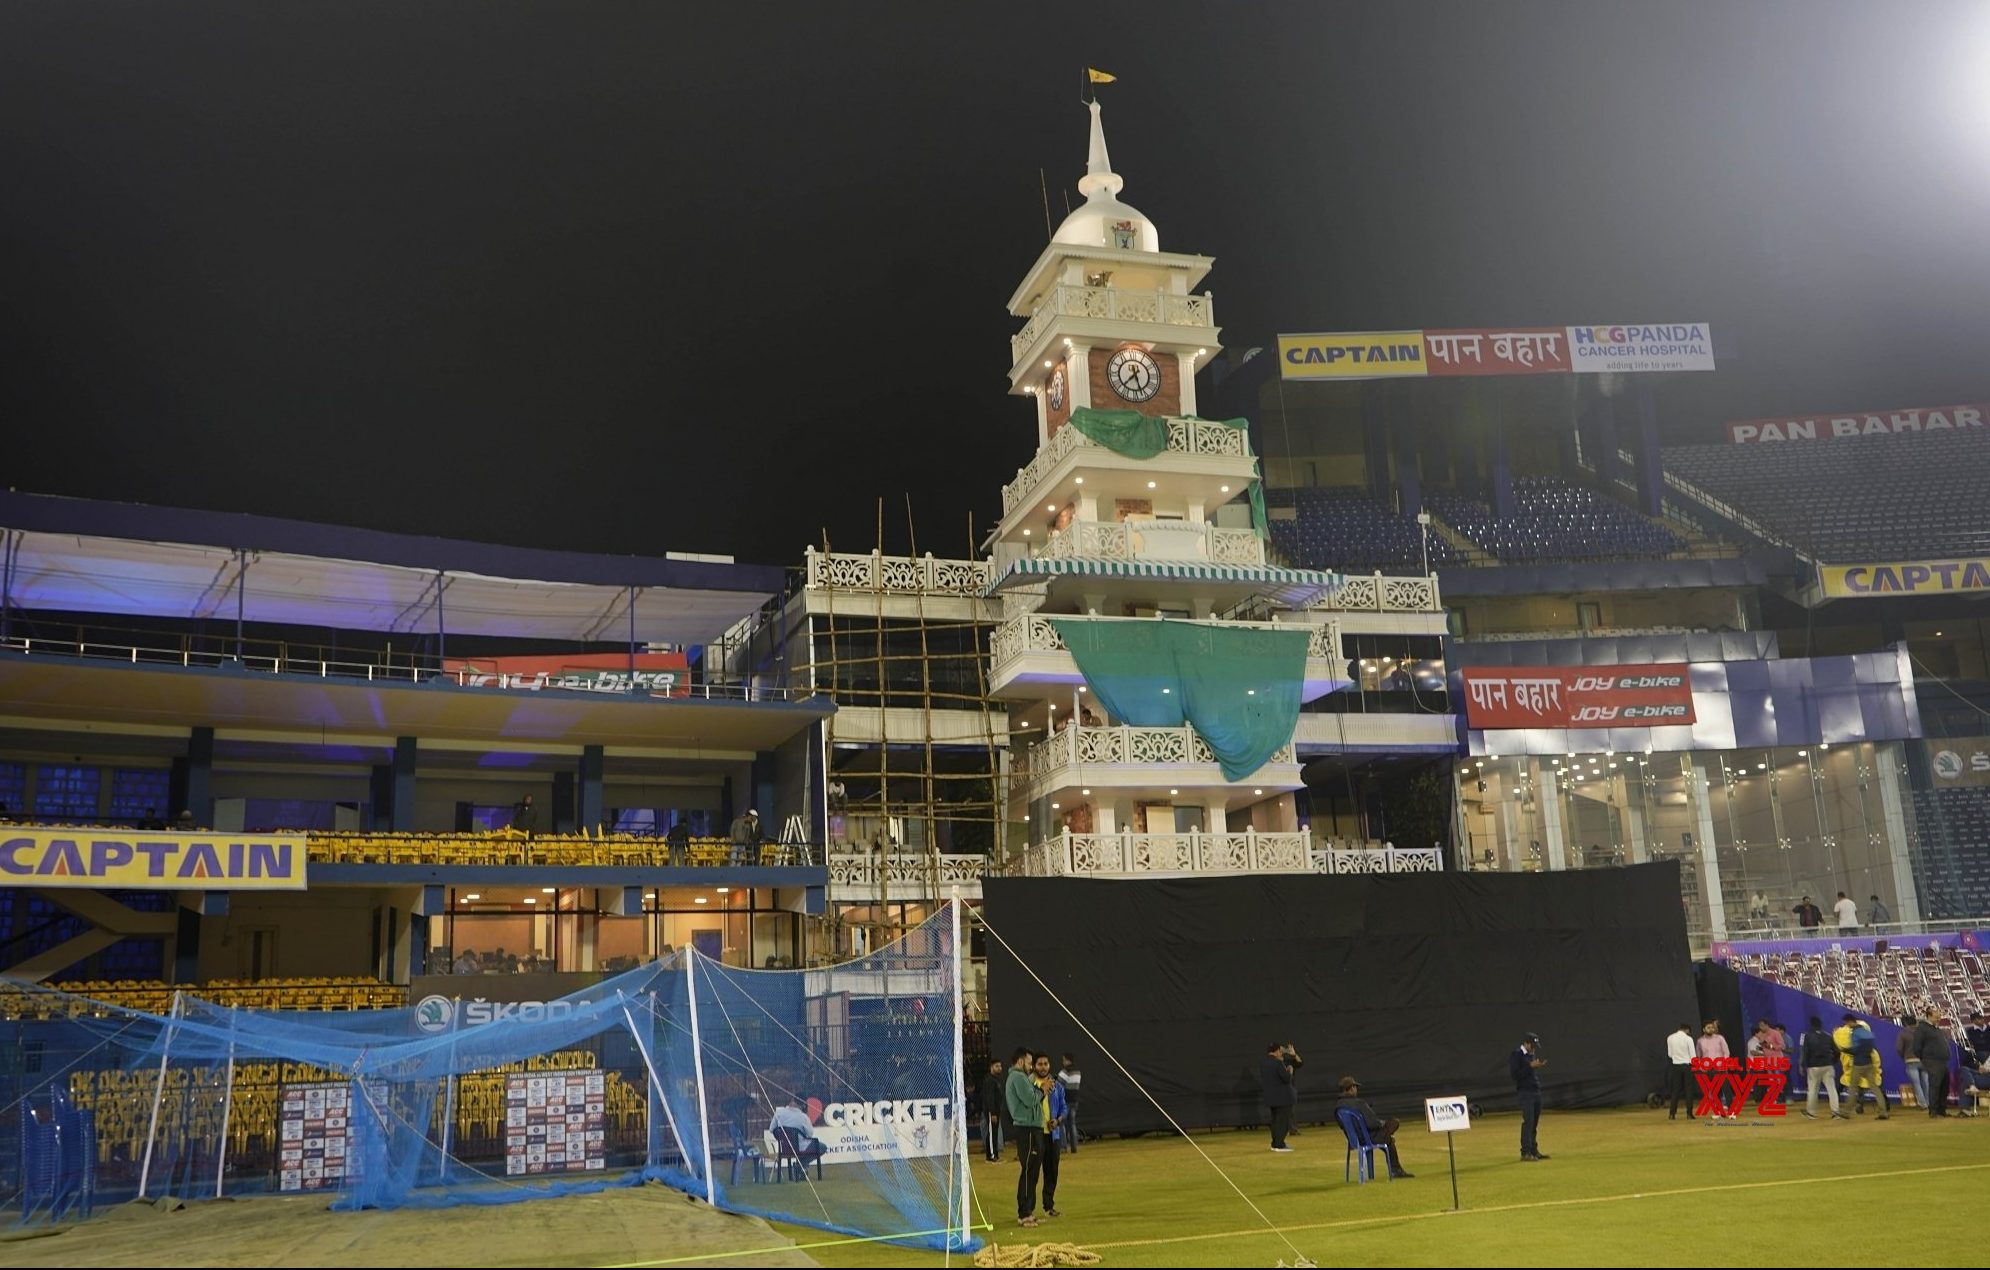 Ind vs WI: Hosts aim to carry Vizag run into Cuttack decider